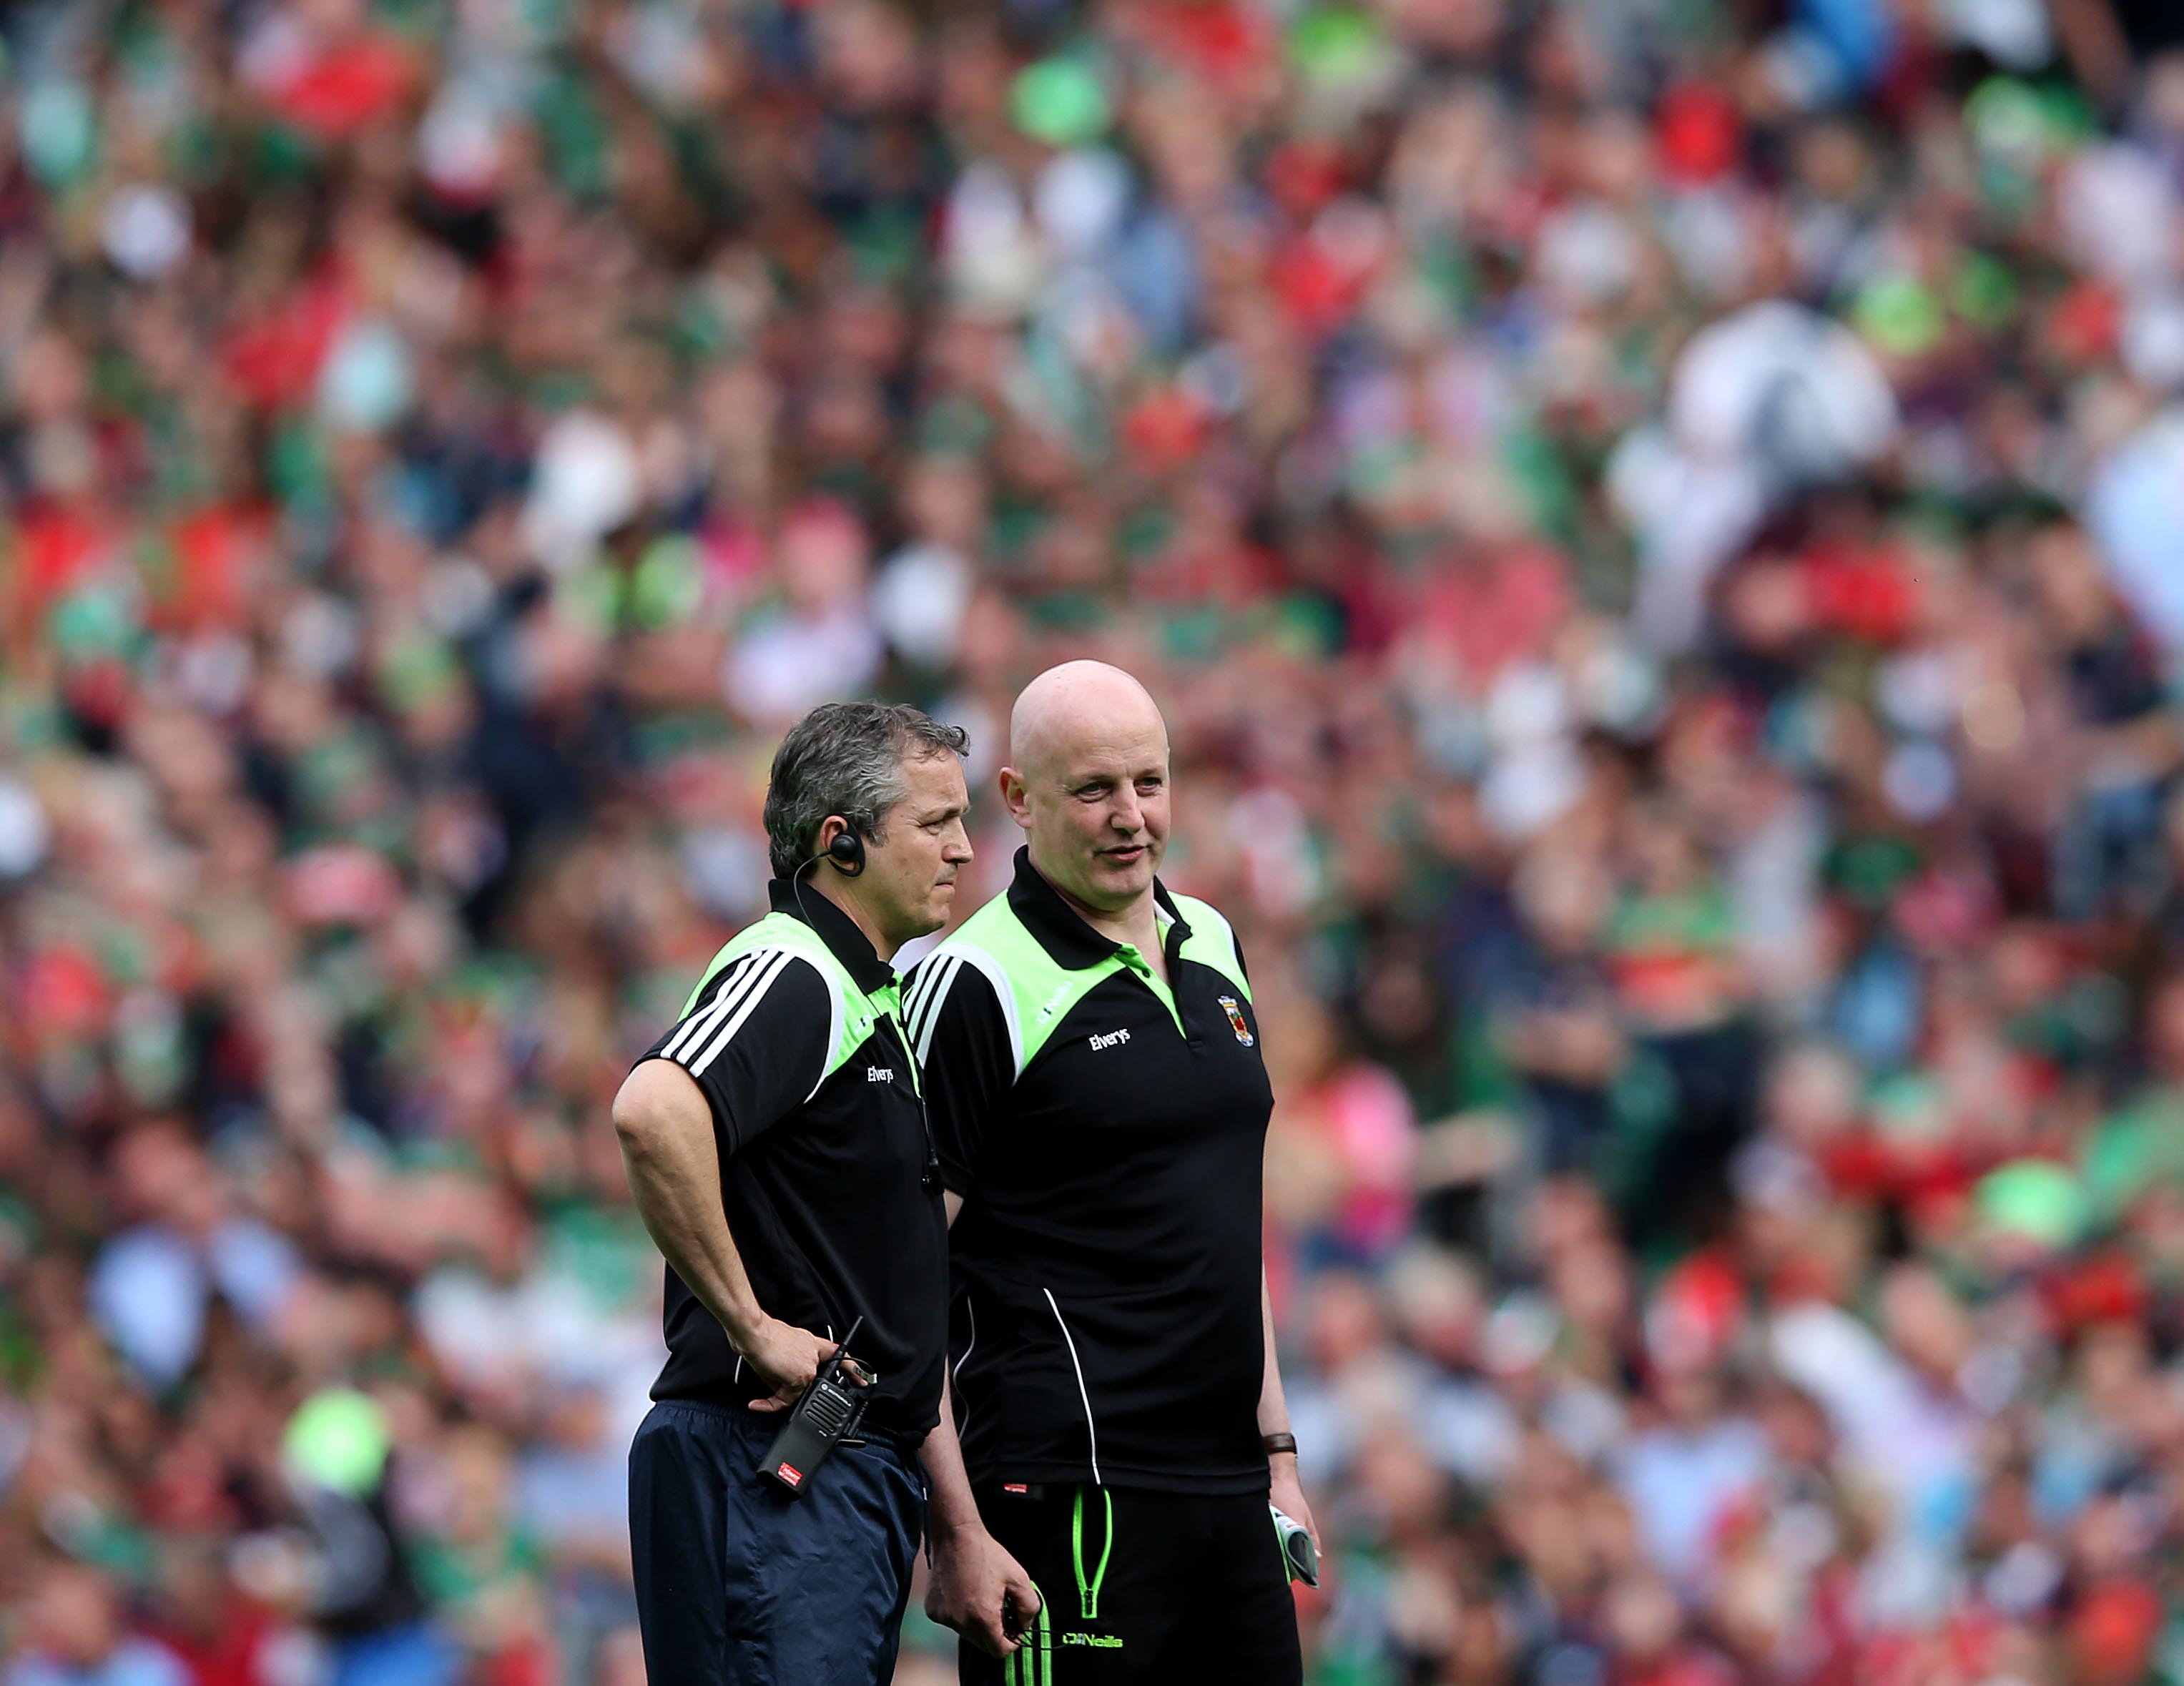 GAA Football All Ireland Senior Championship Semi-Final, Croke Park, Dublin 30/8/2015.Dublin vs Mayo.Mayo co managers Noel Connelly and Pat Holmes .Mandatory Credit ©INPHO/Ryan Byrne